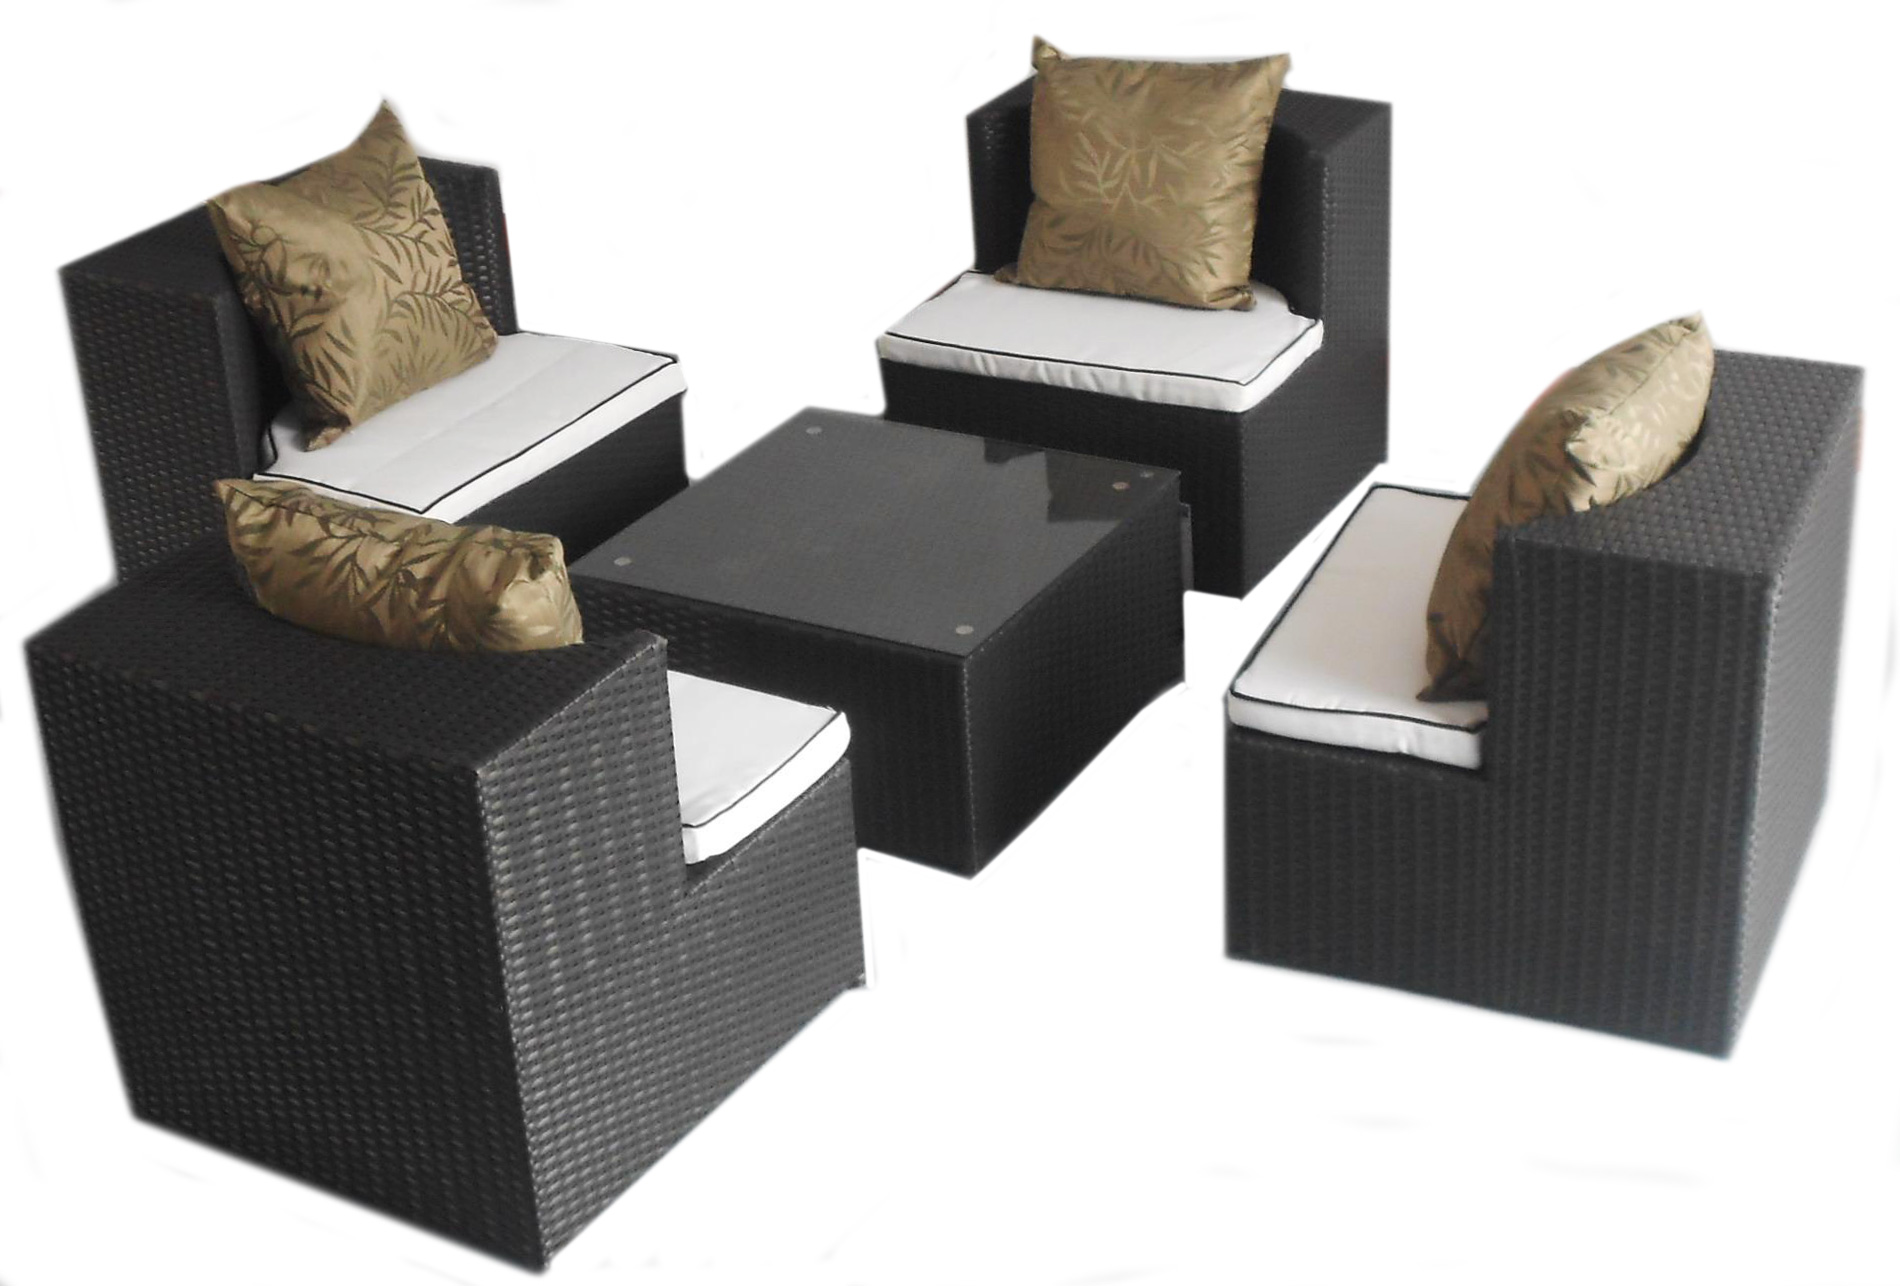 Deeco Consumer Products DM-GC-504 Art-Deck-Oh Geo-Cube interlocking all weather wicker furniture set at Sears.com